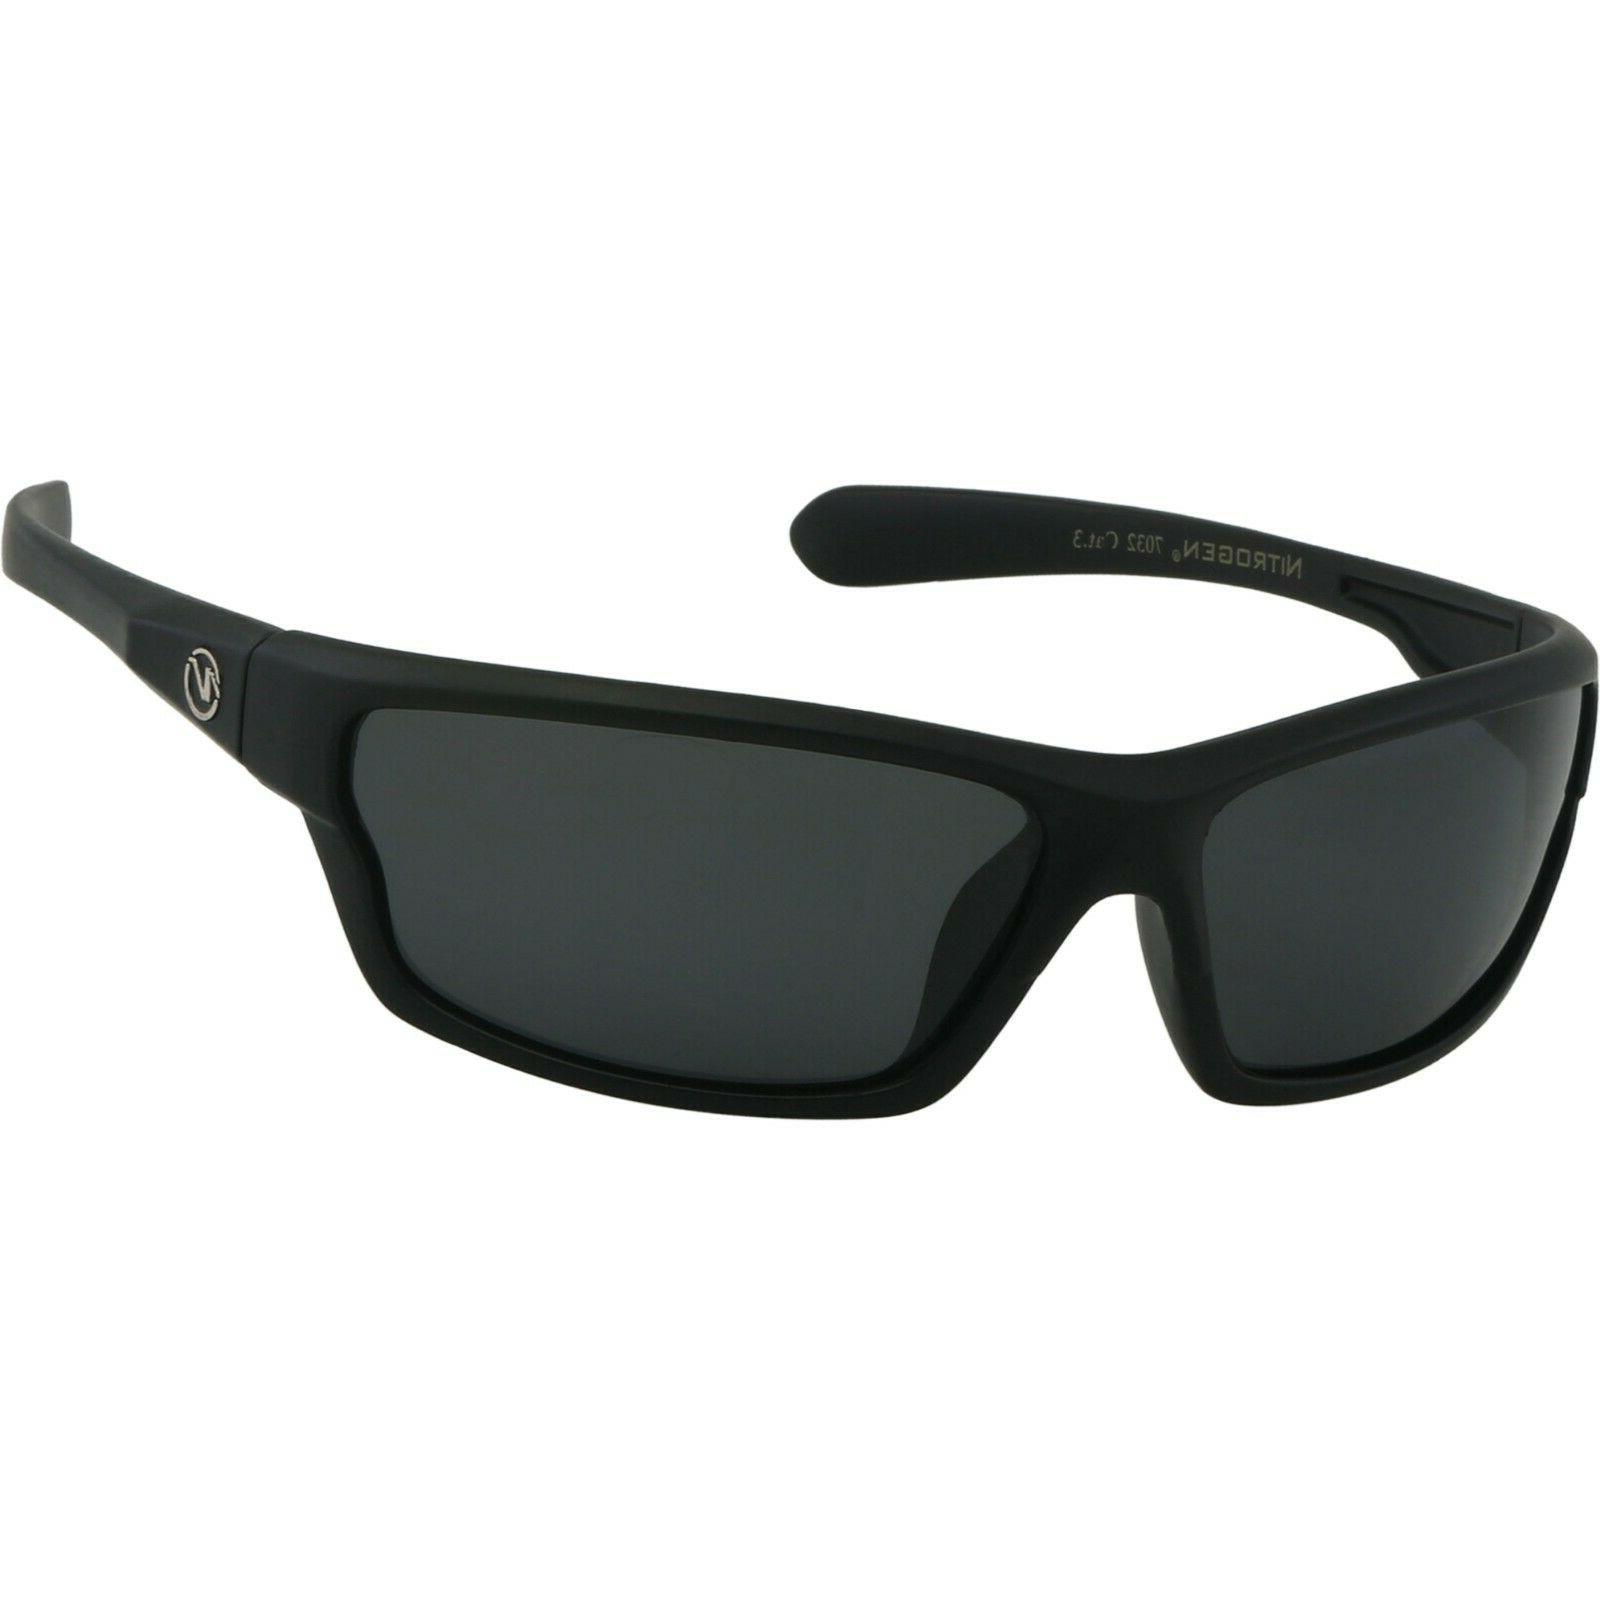 polarized sunglasses mens sport running fishing golfing